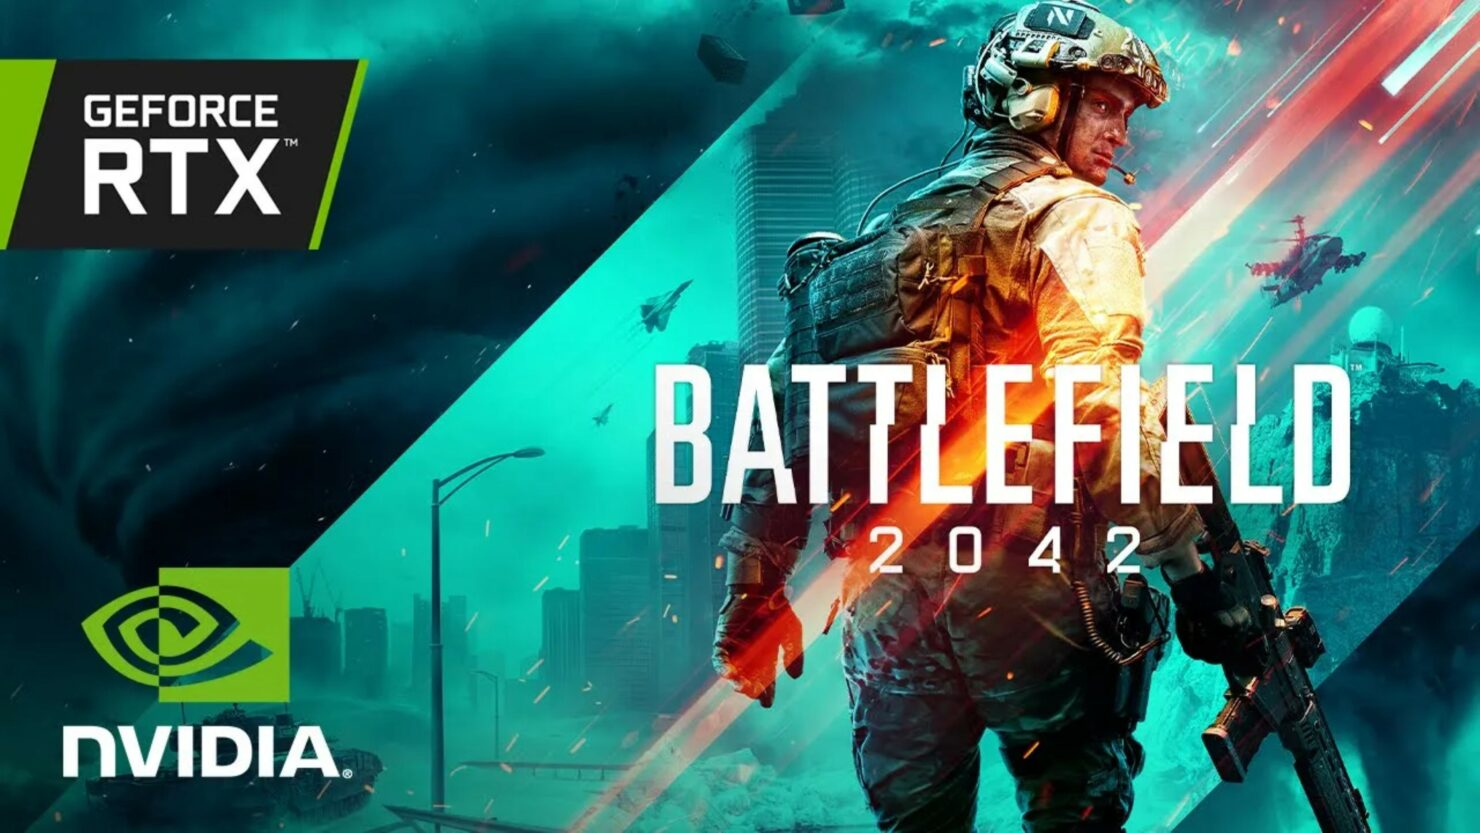 Battlefield 2042 Beta Only Delivers 80-90 FPS On PC With NVIDIA GeForce RTX 2080 Ti at 1080p Recommended Settings